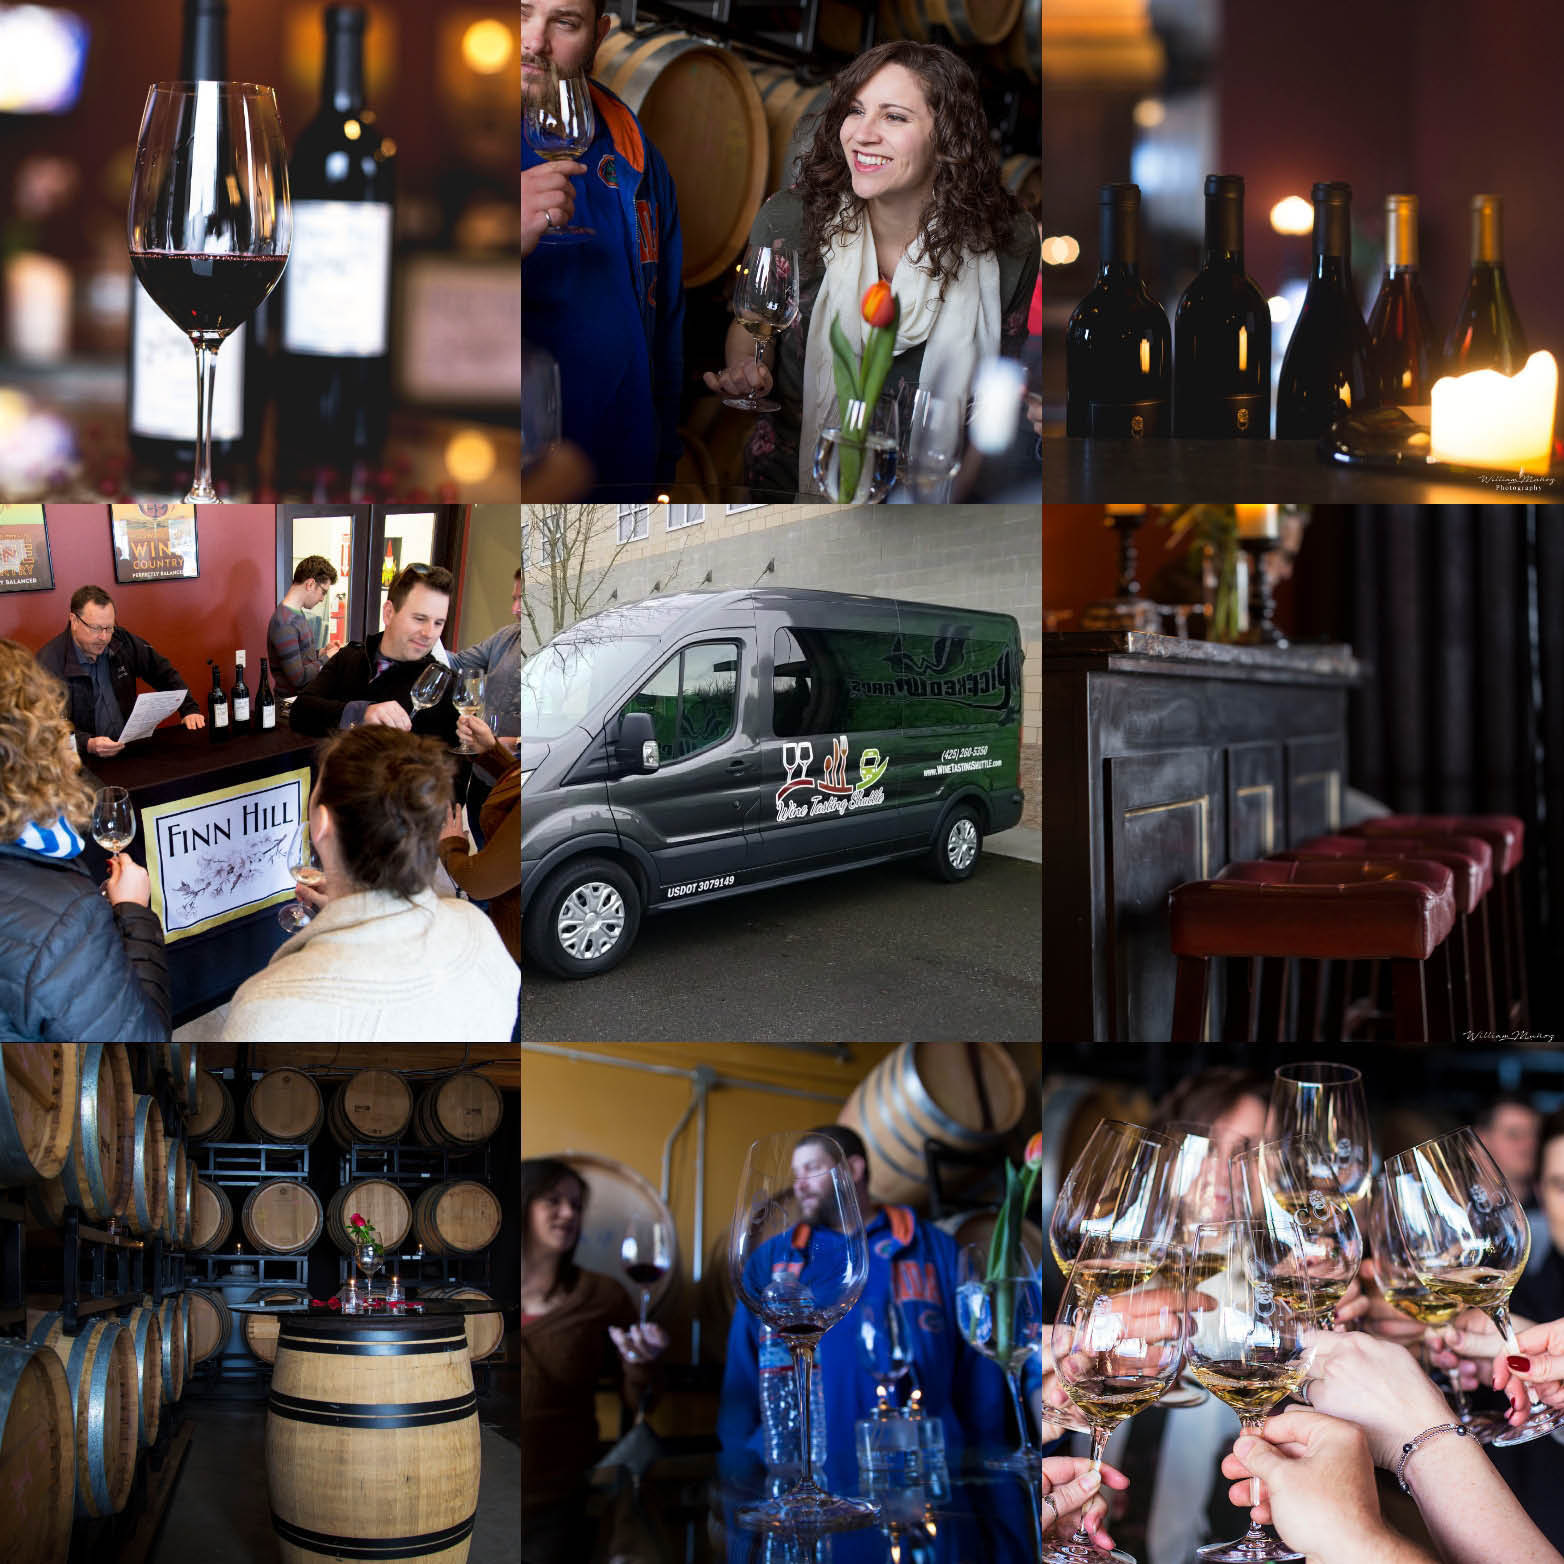 Collage of photos of Wine Tasting Shuttle in Seattle, WA - enjoy wine tasting in Seattle - Woodinville wine tasting - Seattle wine tasting at Finn Hill Winery